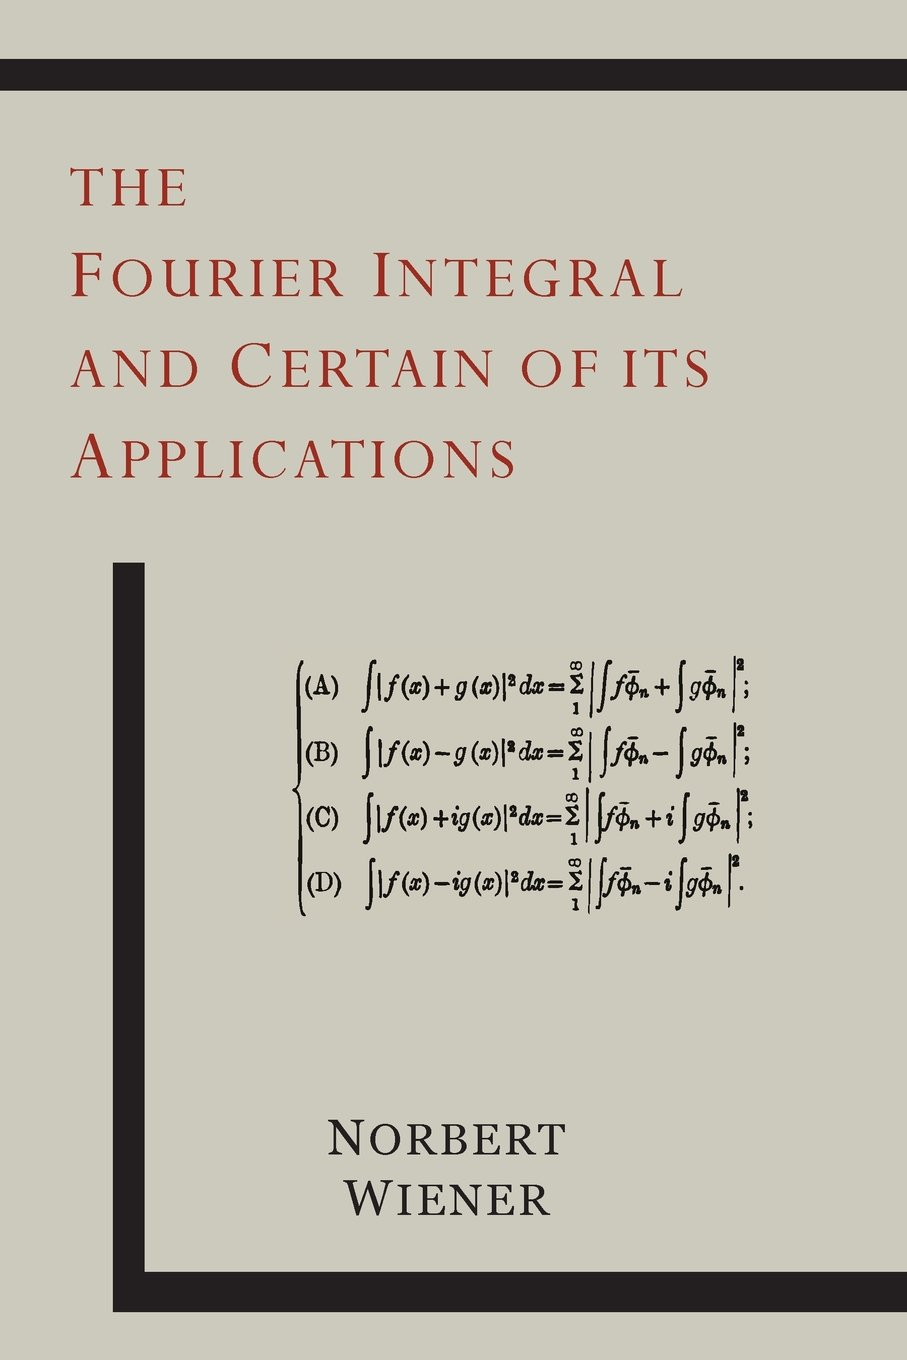 Fourier integral and applications